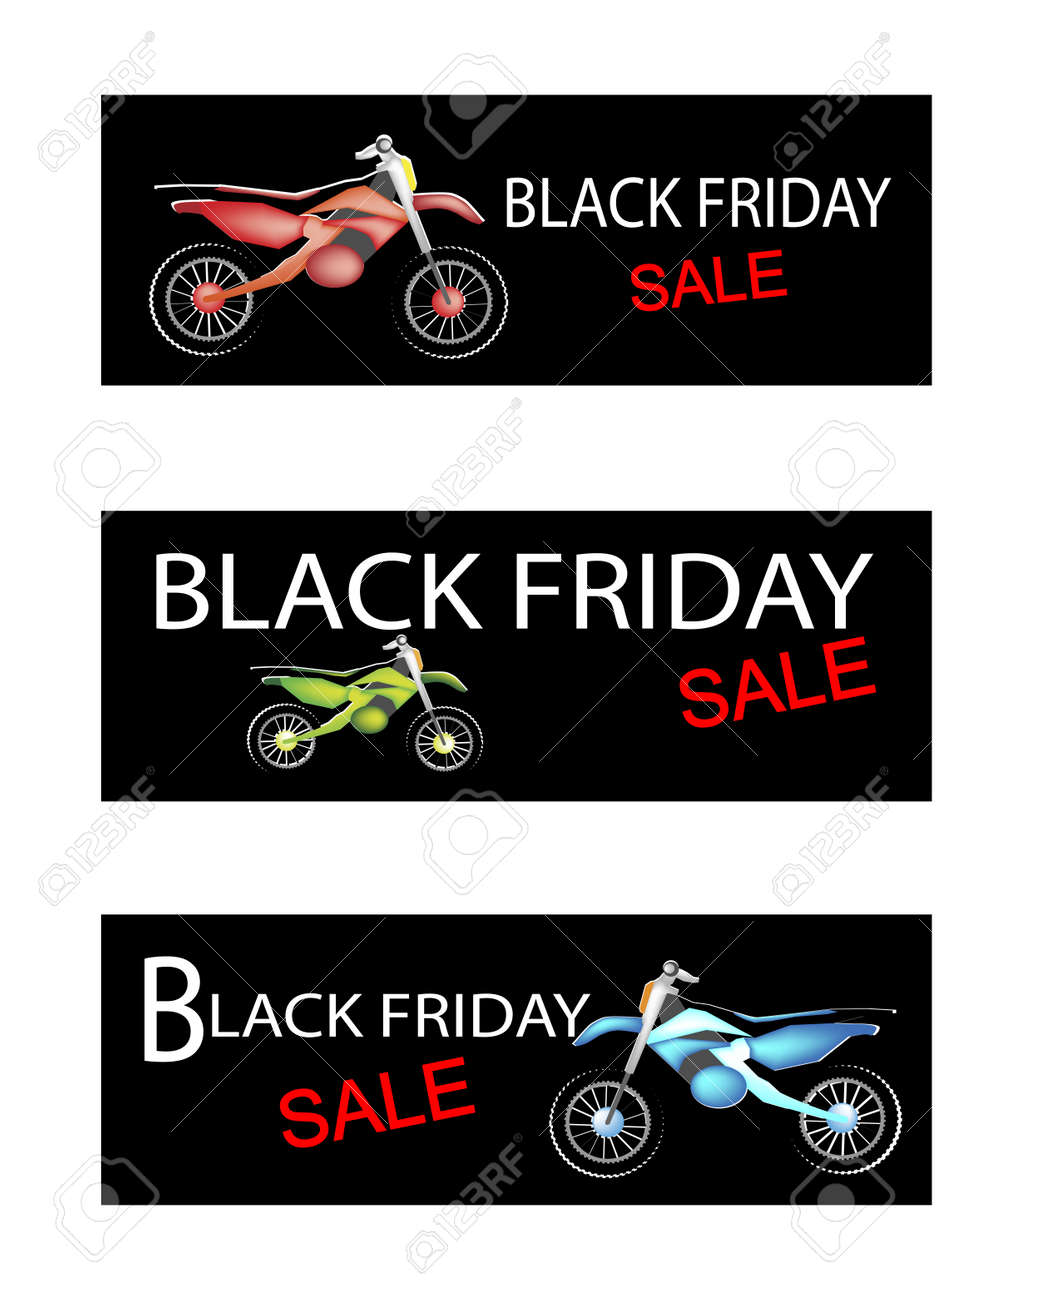 Illustration Of Motorcycle Or Sports Bike On Black Friday Shopping Royalty Free Cliparts Vectors And Stock Illustration Image 48000743